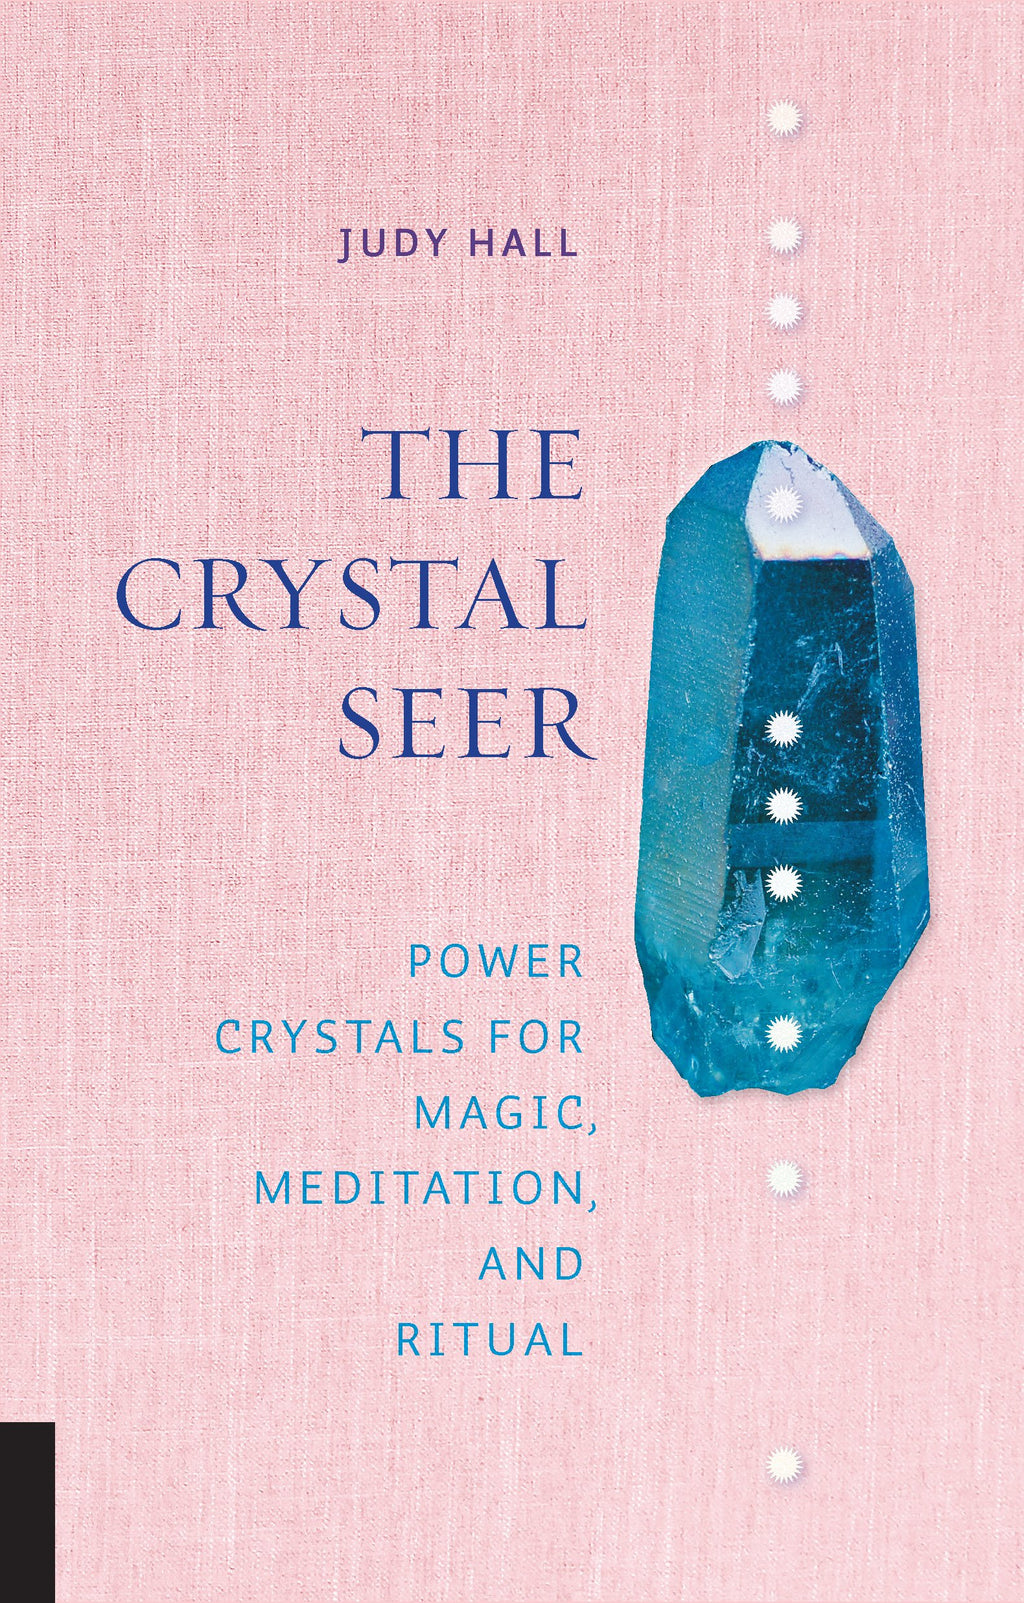 Crystal Seer by Judy Hall